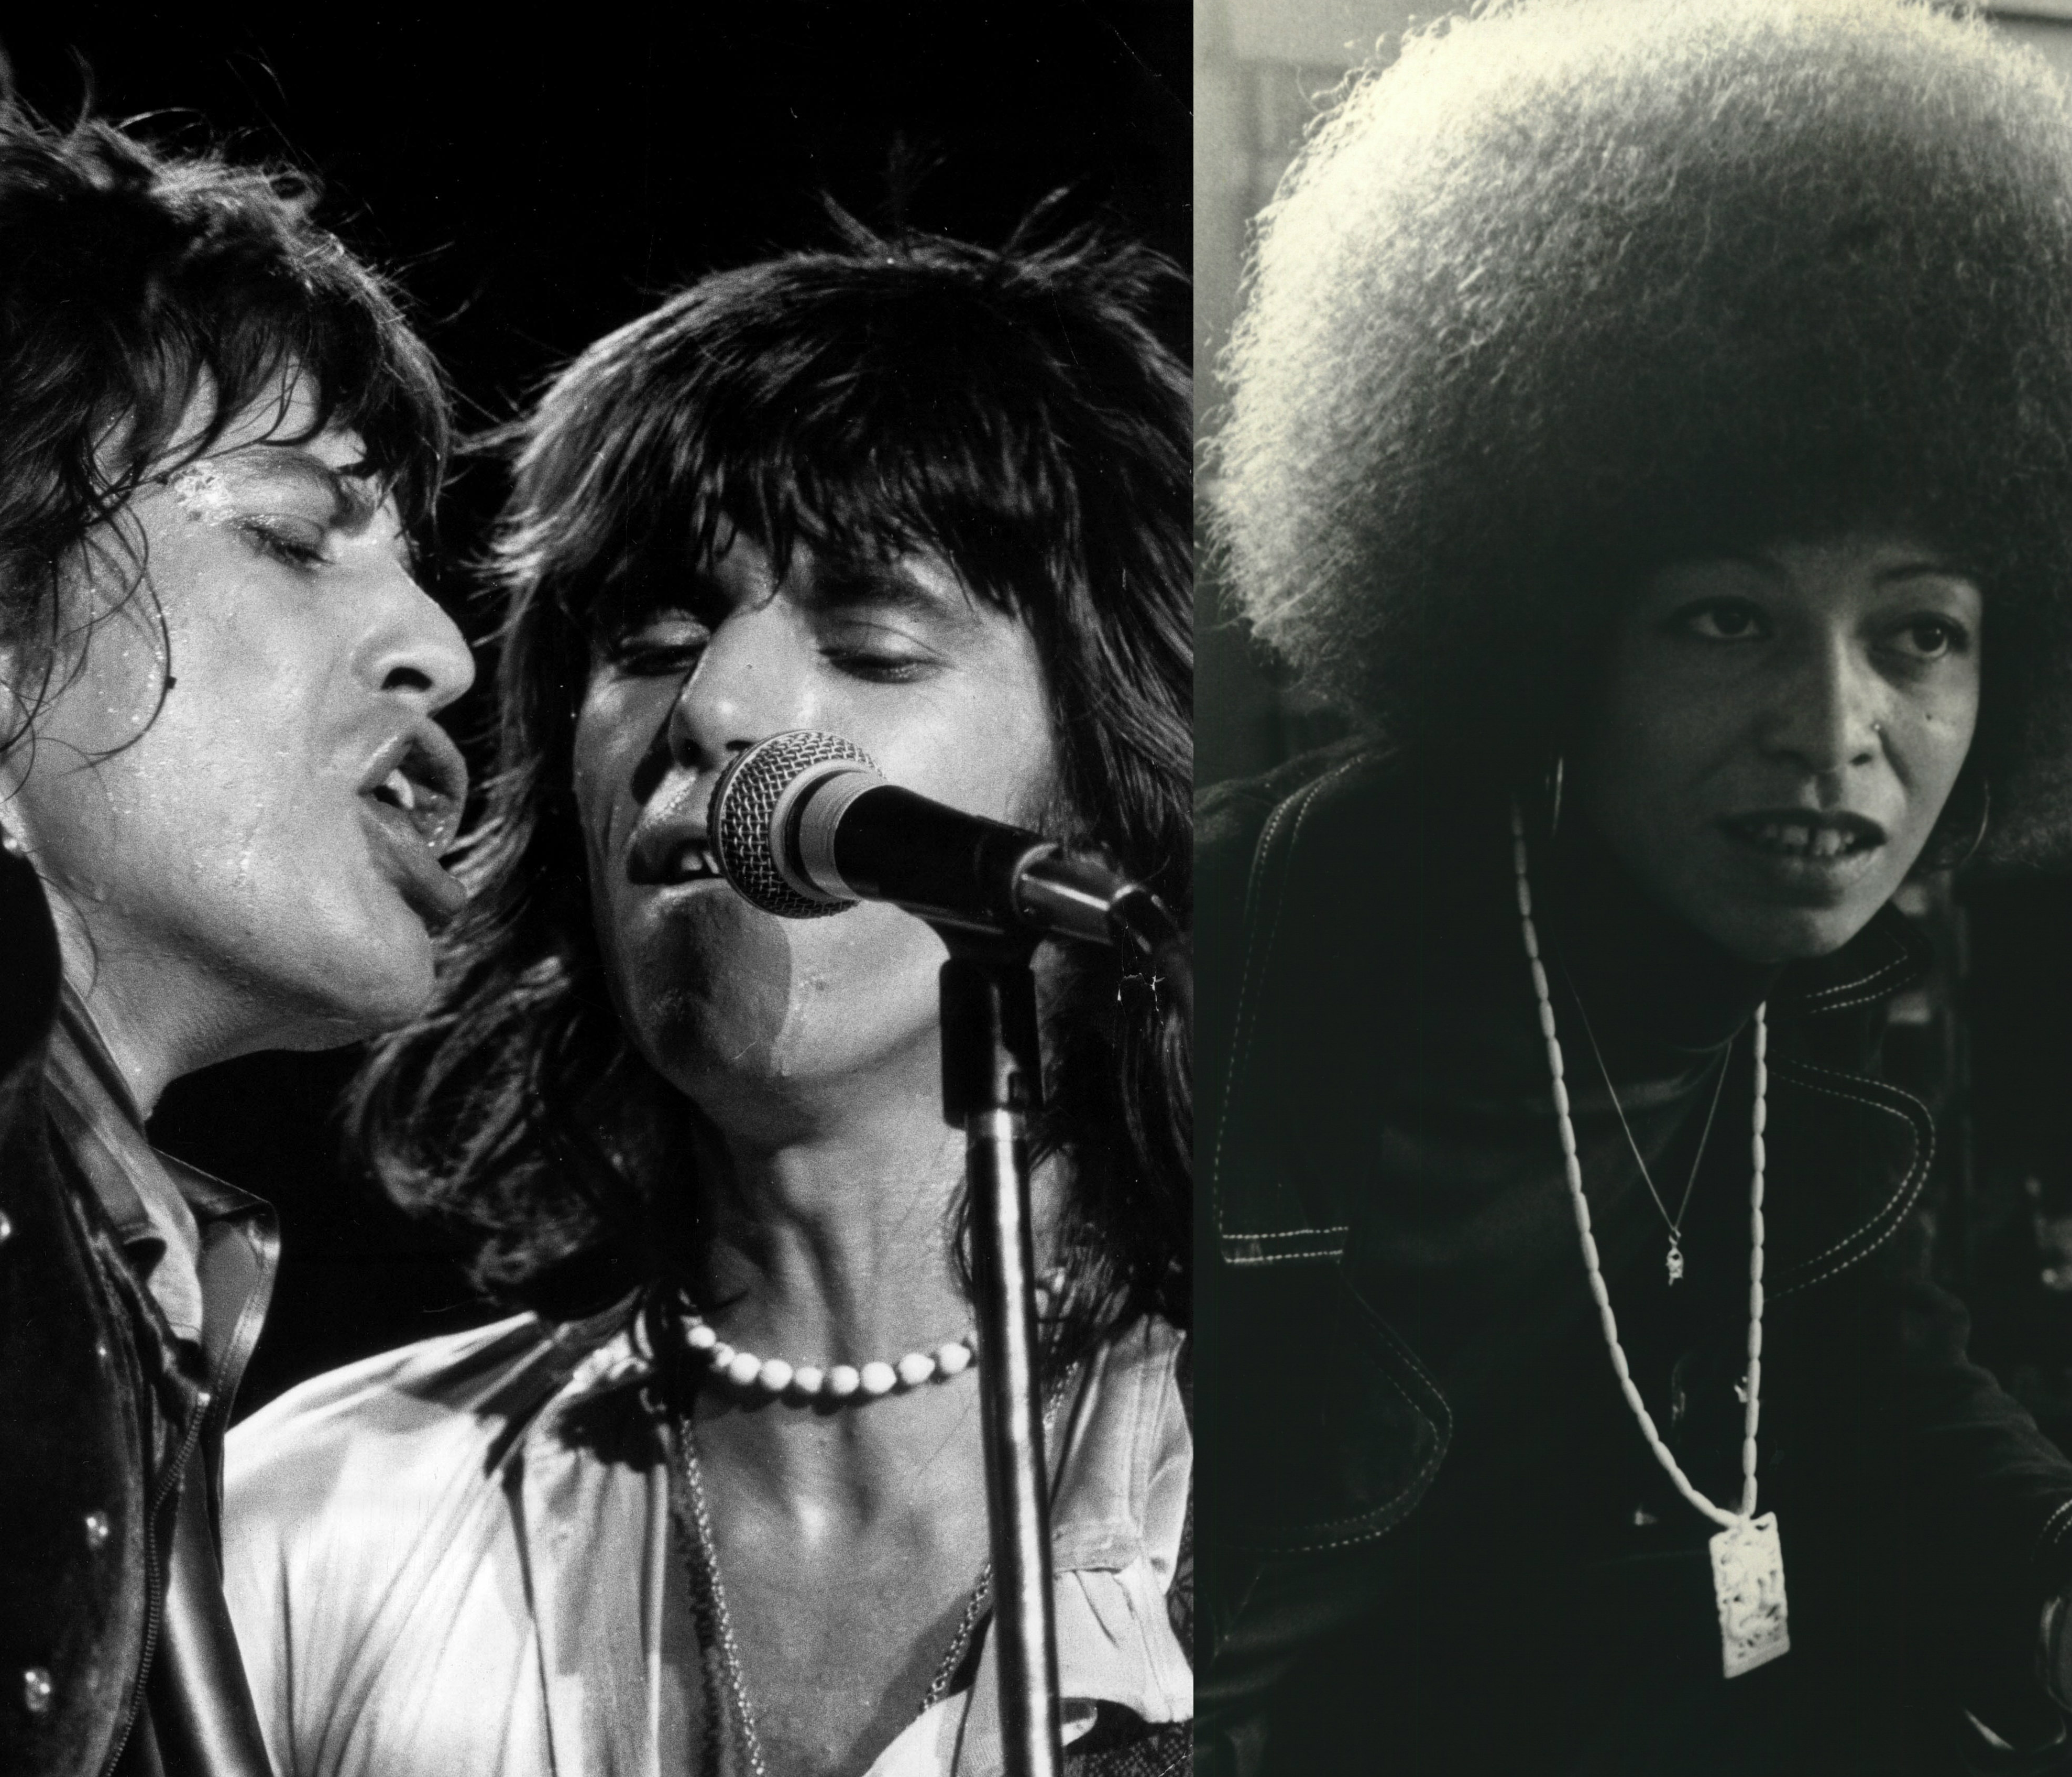 The story behind The Rolling Stones' Angela Davis song - al com